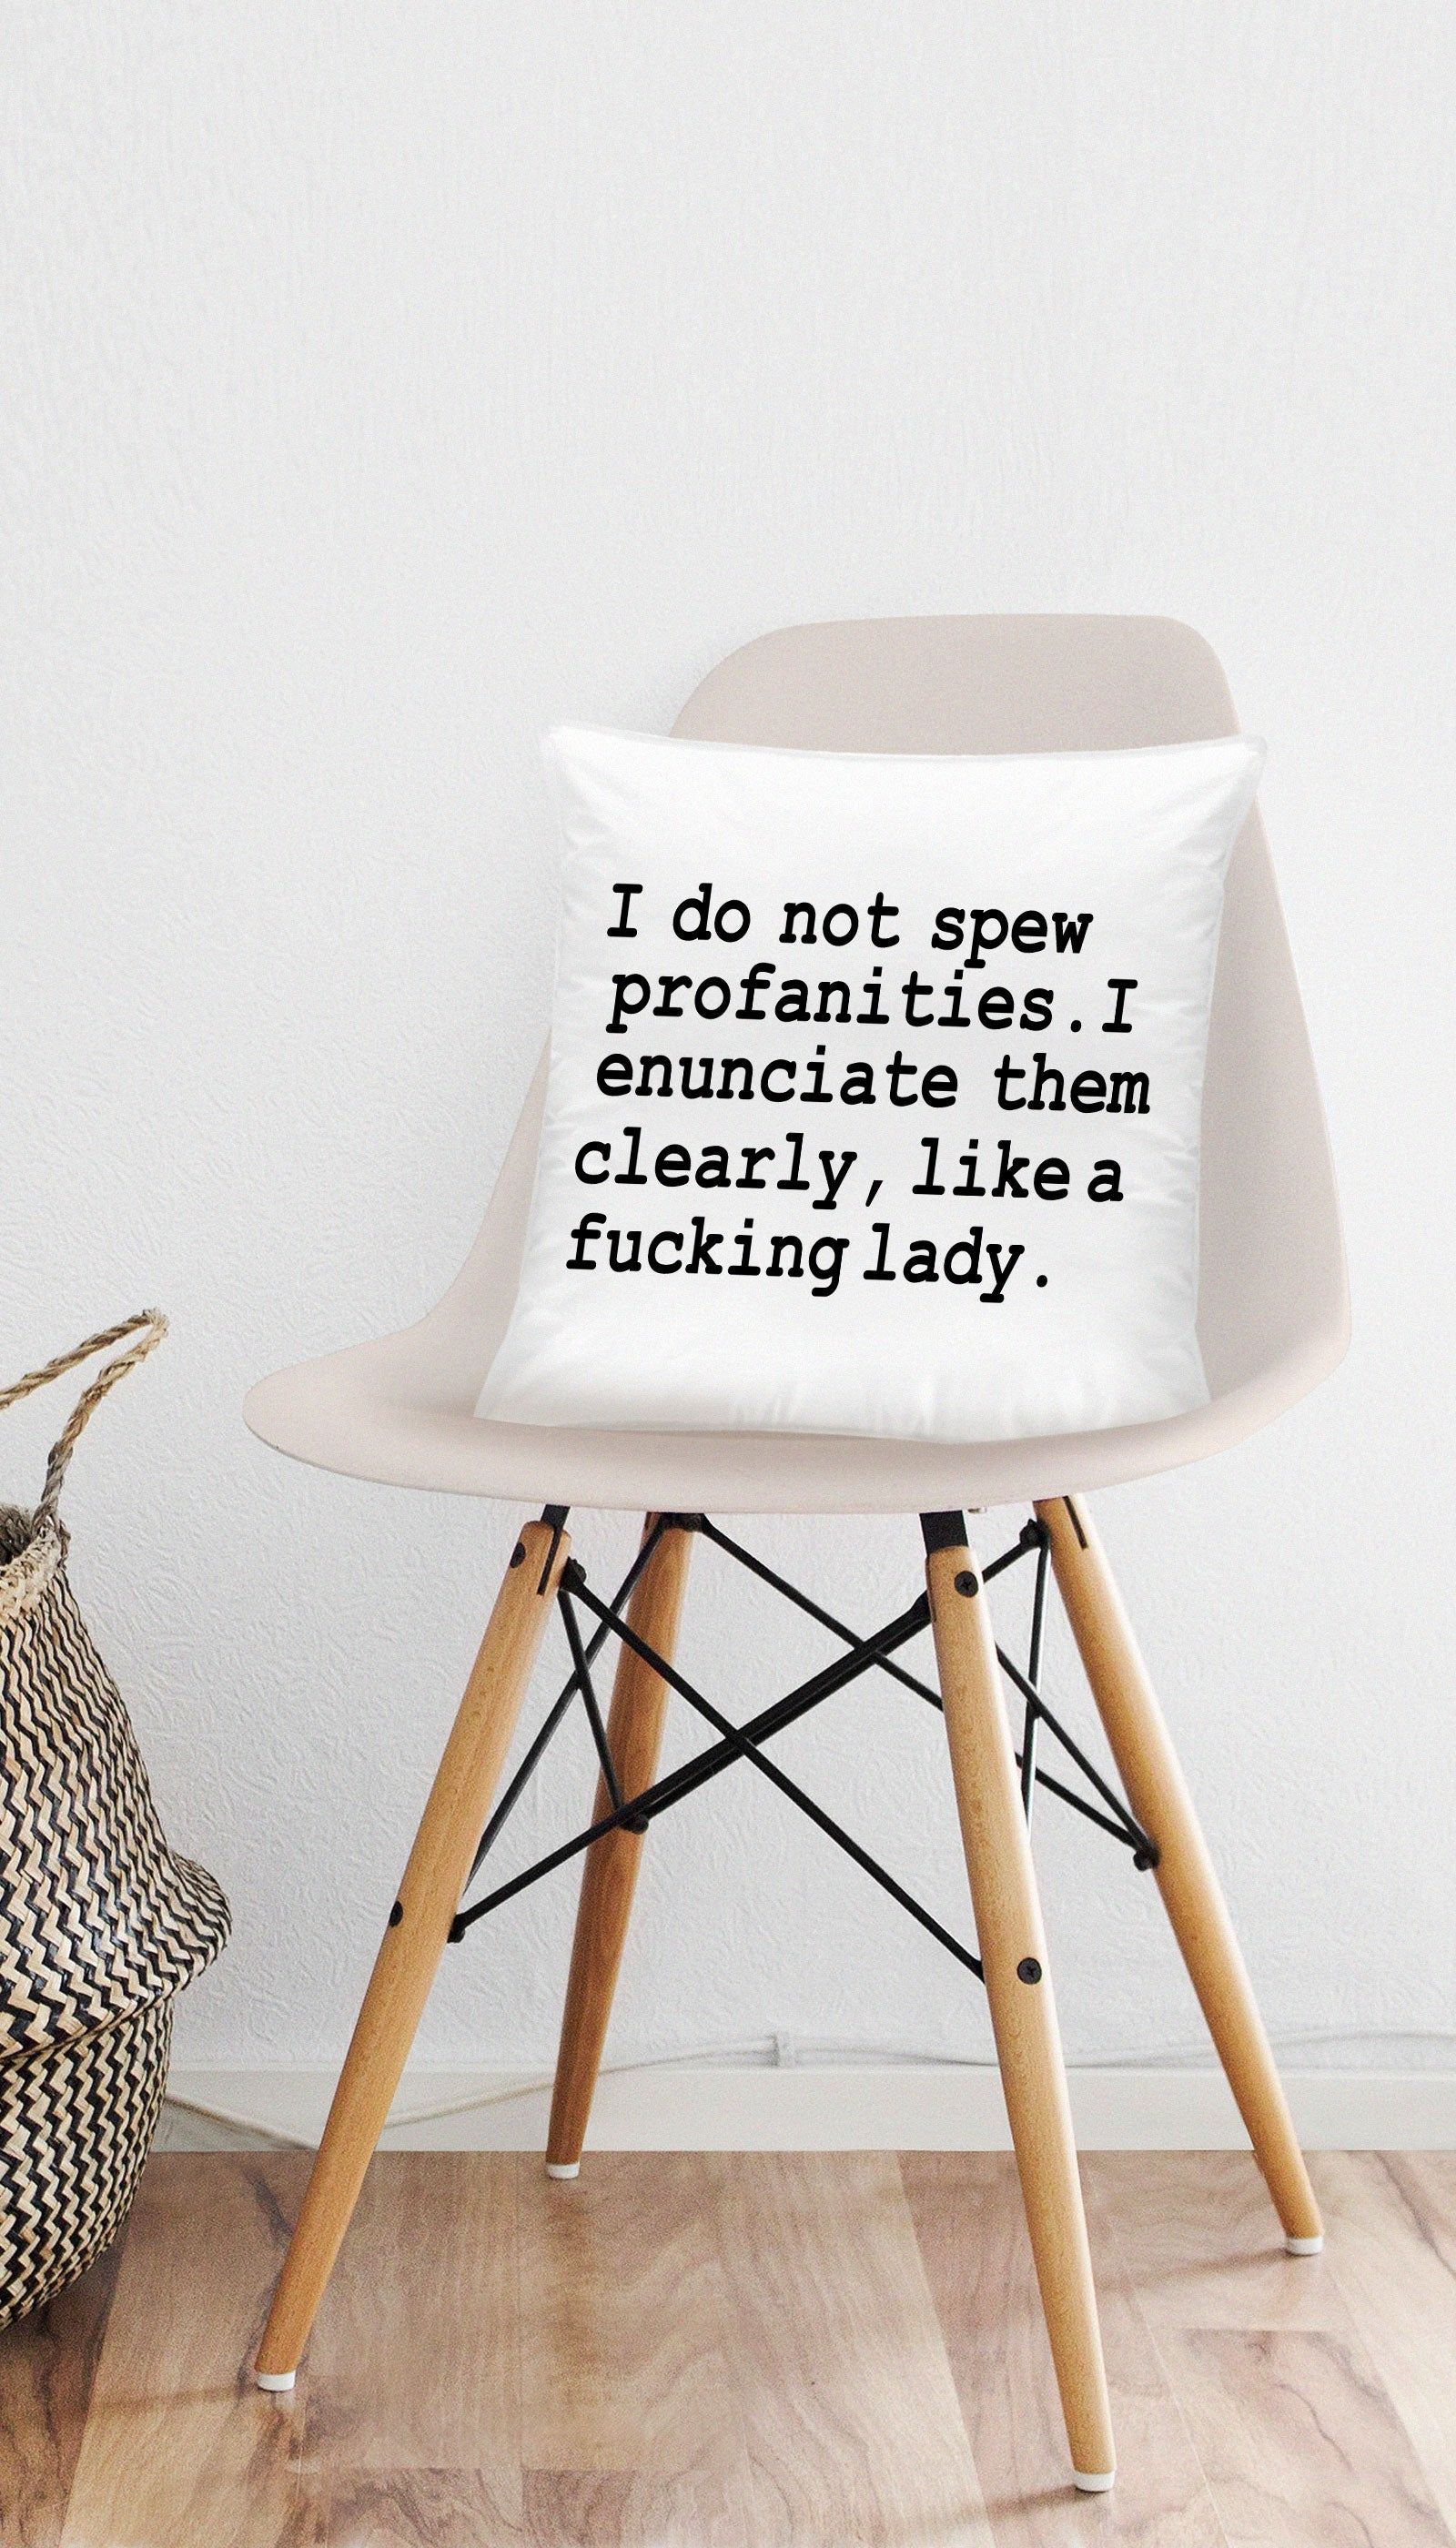 I Do Not Spew Profanities Funny & Clever Home Throw Pillow Gift | Sarcastic ME